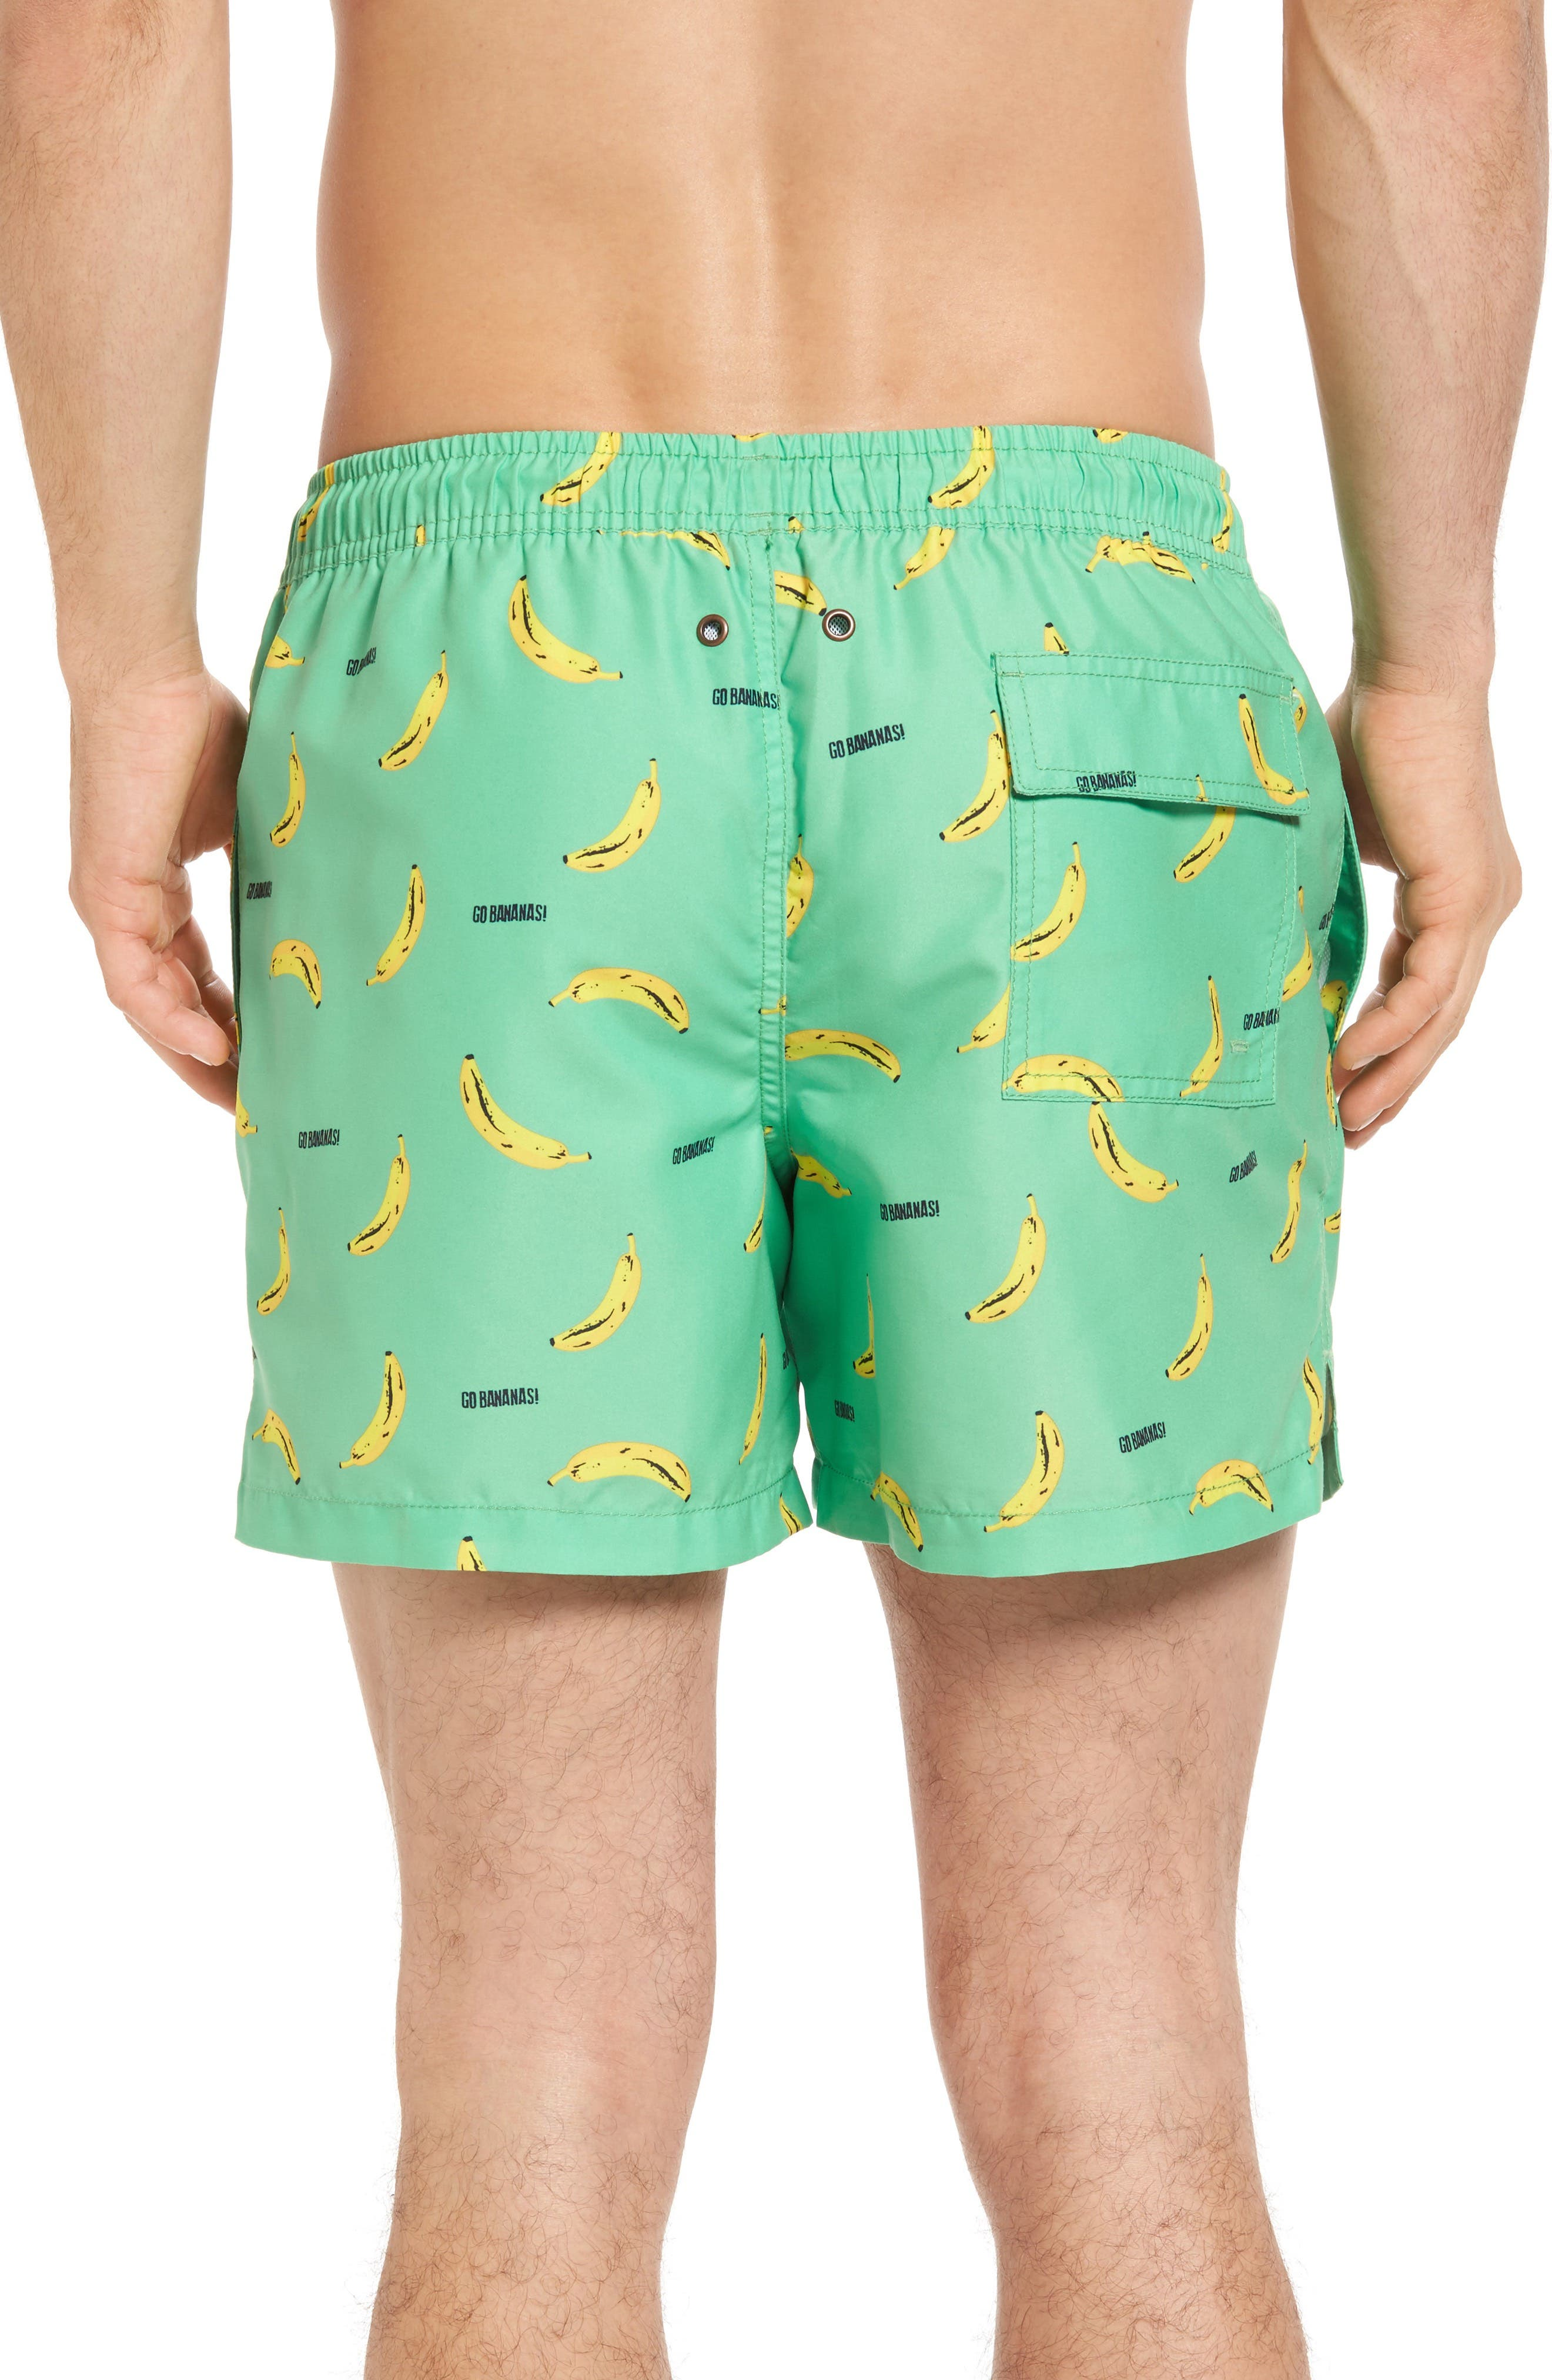 Go Bananas Swim Trunks,                             Alternate thumbnail 2, color,                             300